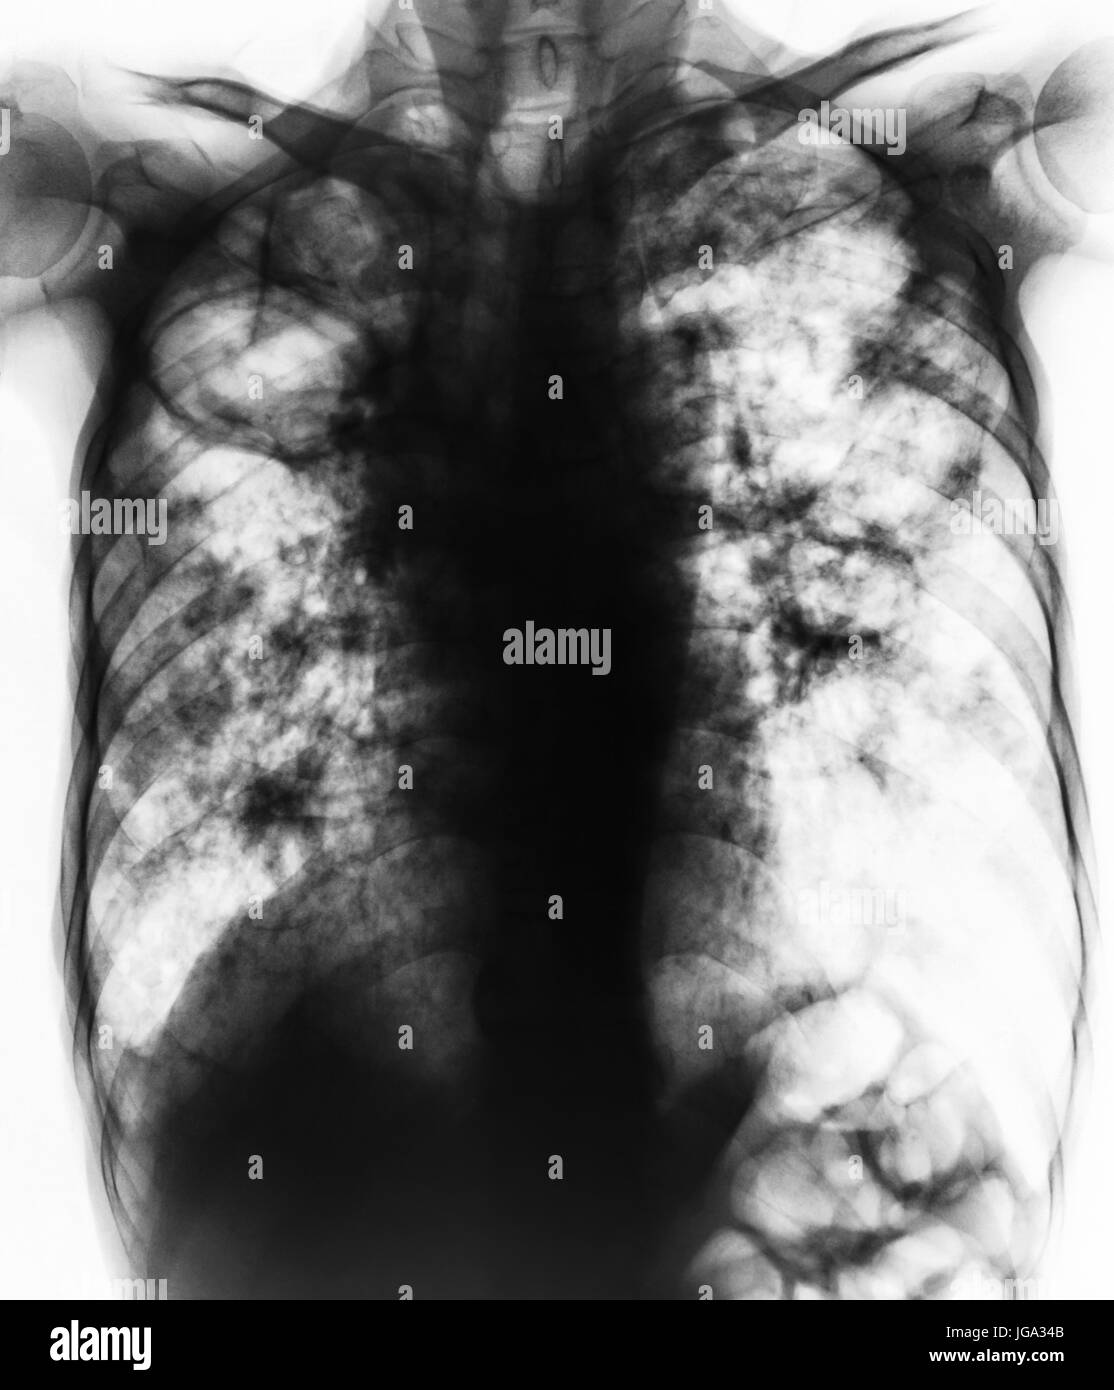 Pulmonary Tuberculosis . Film chest x-ray show fibrosis,cavity,interstitial infiltration both lung due to Mycobacterium - Stock Image